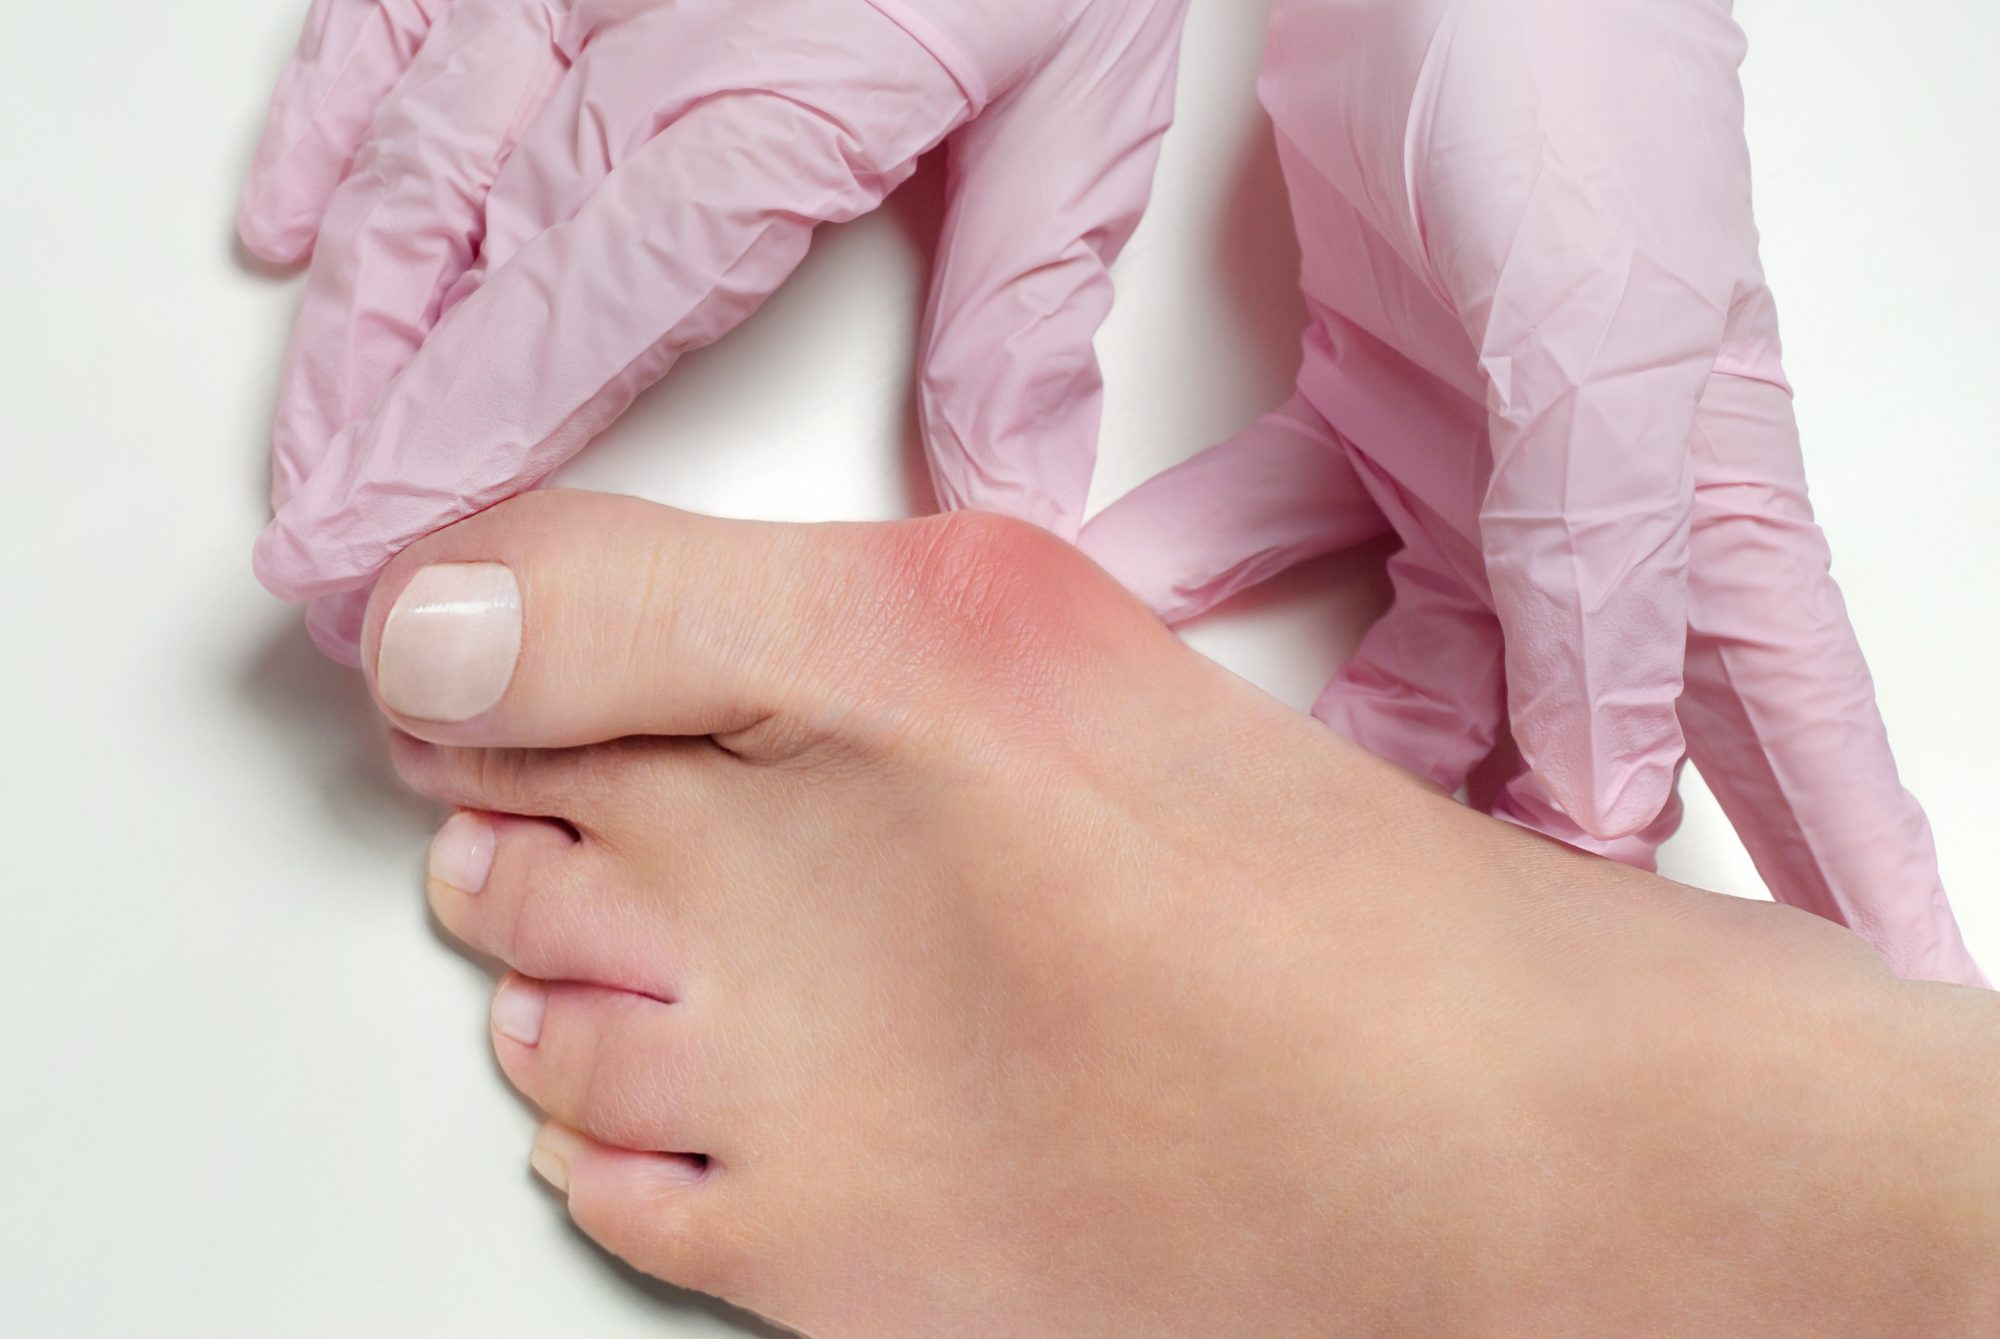 close-up of foot with bunion